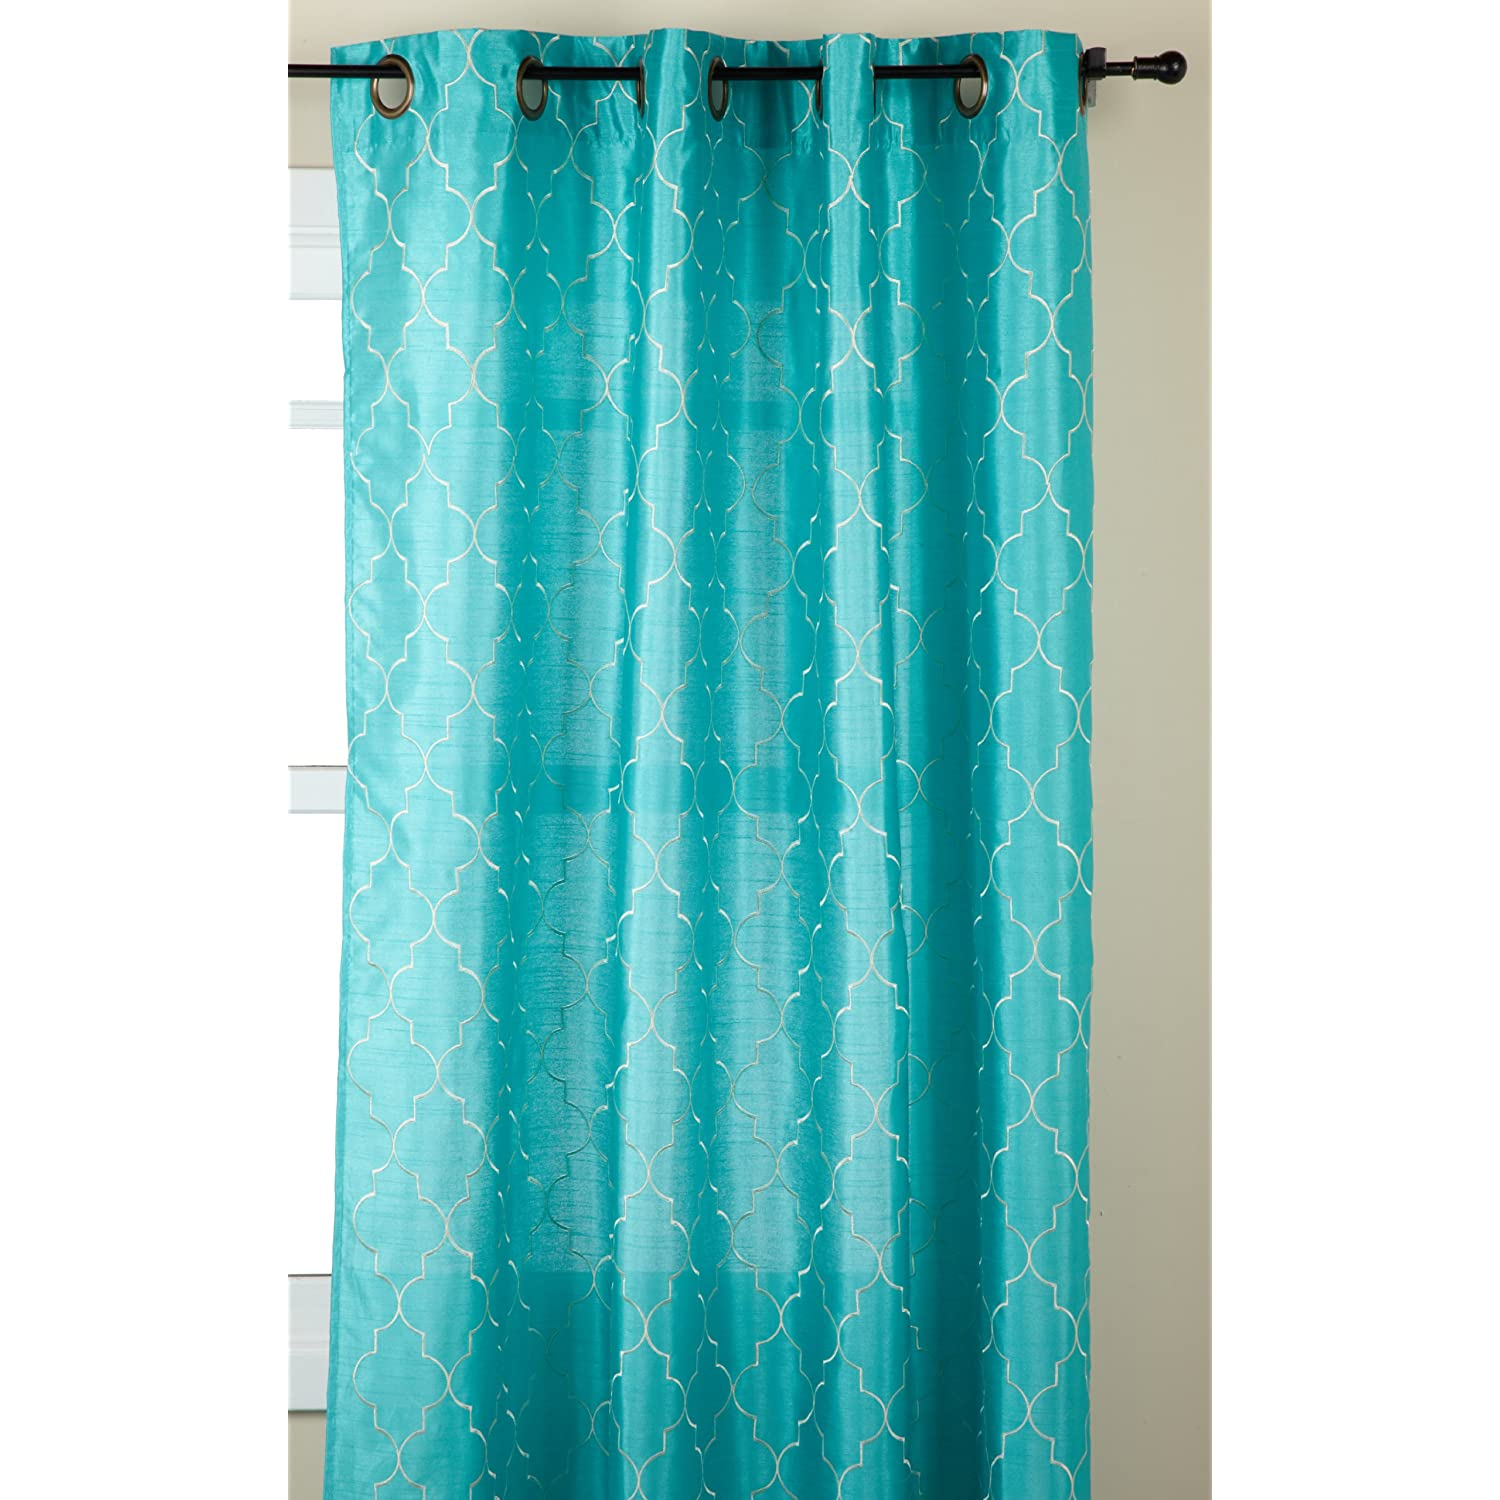 Turquoise curtains... | homey type stuffs | Pinterest